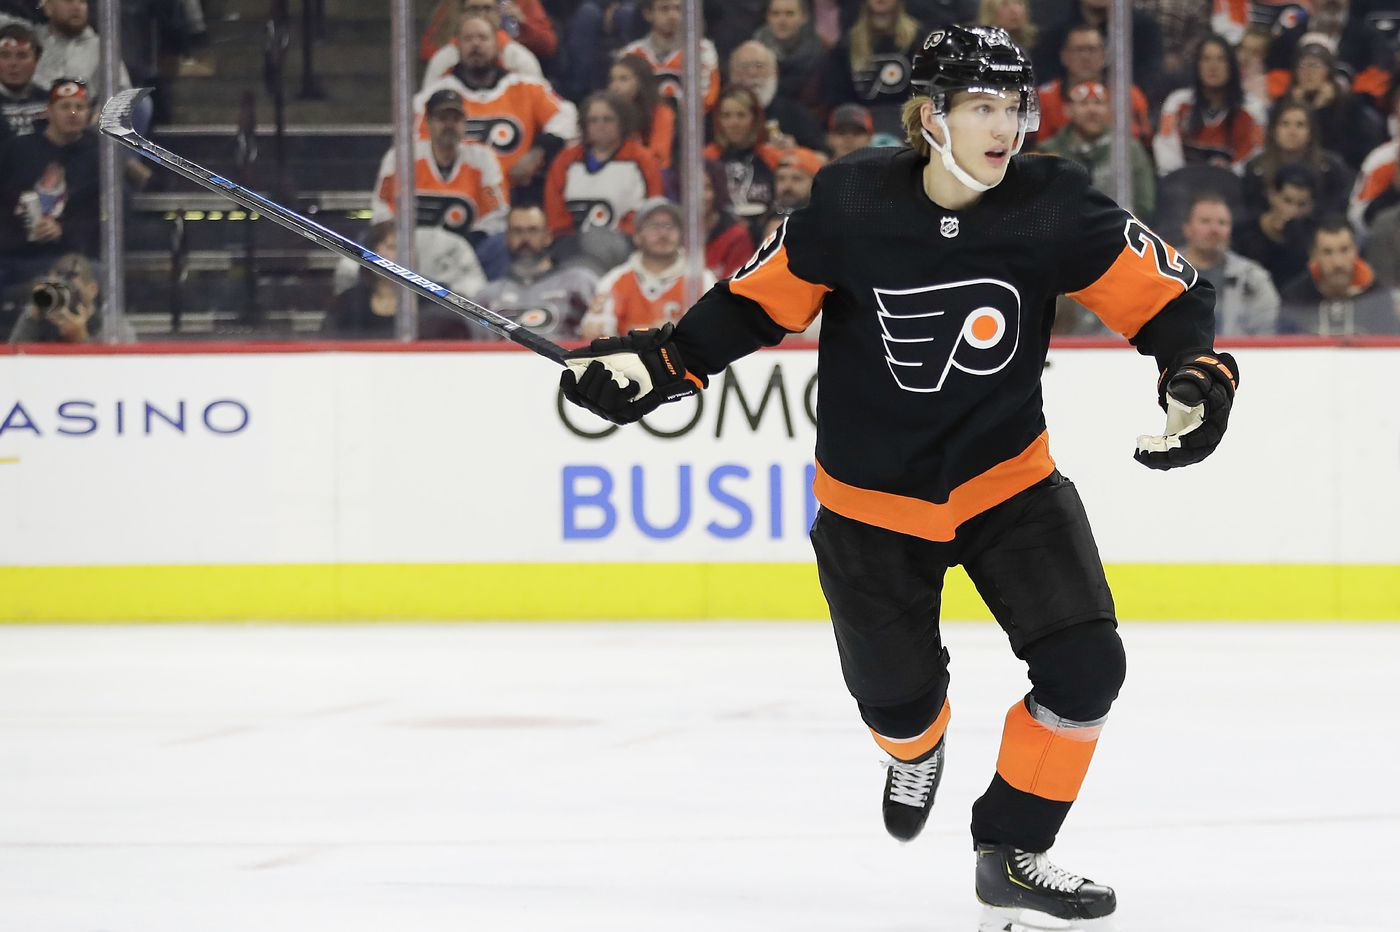 Suddenly, injuries piling up on Flyers, who are minus top goal scorers Travis Konecny and Oskar Lindblom, among others